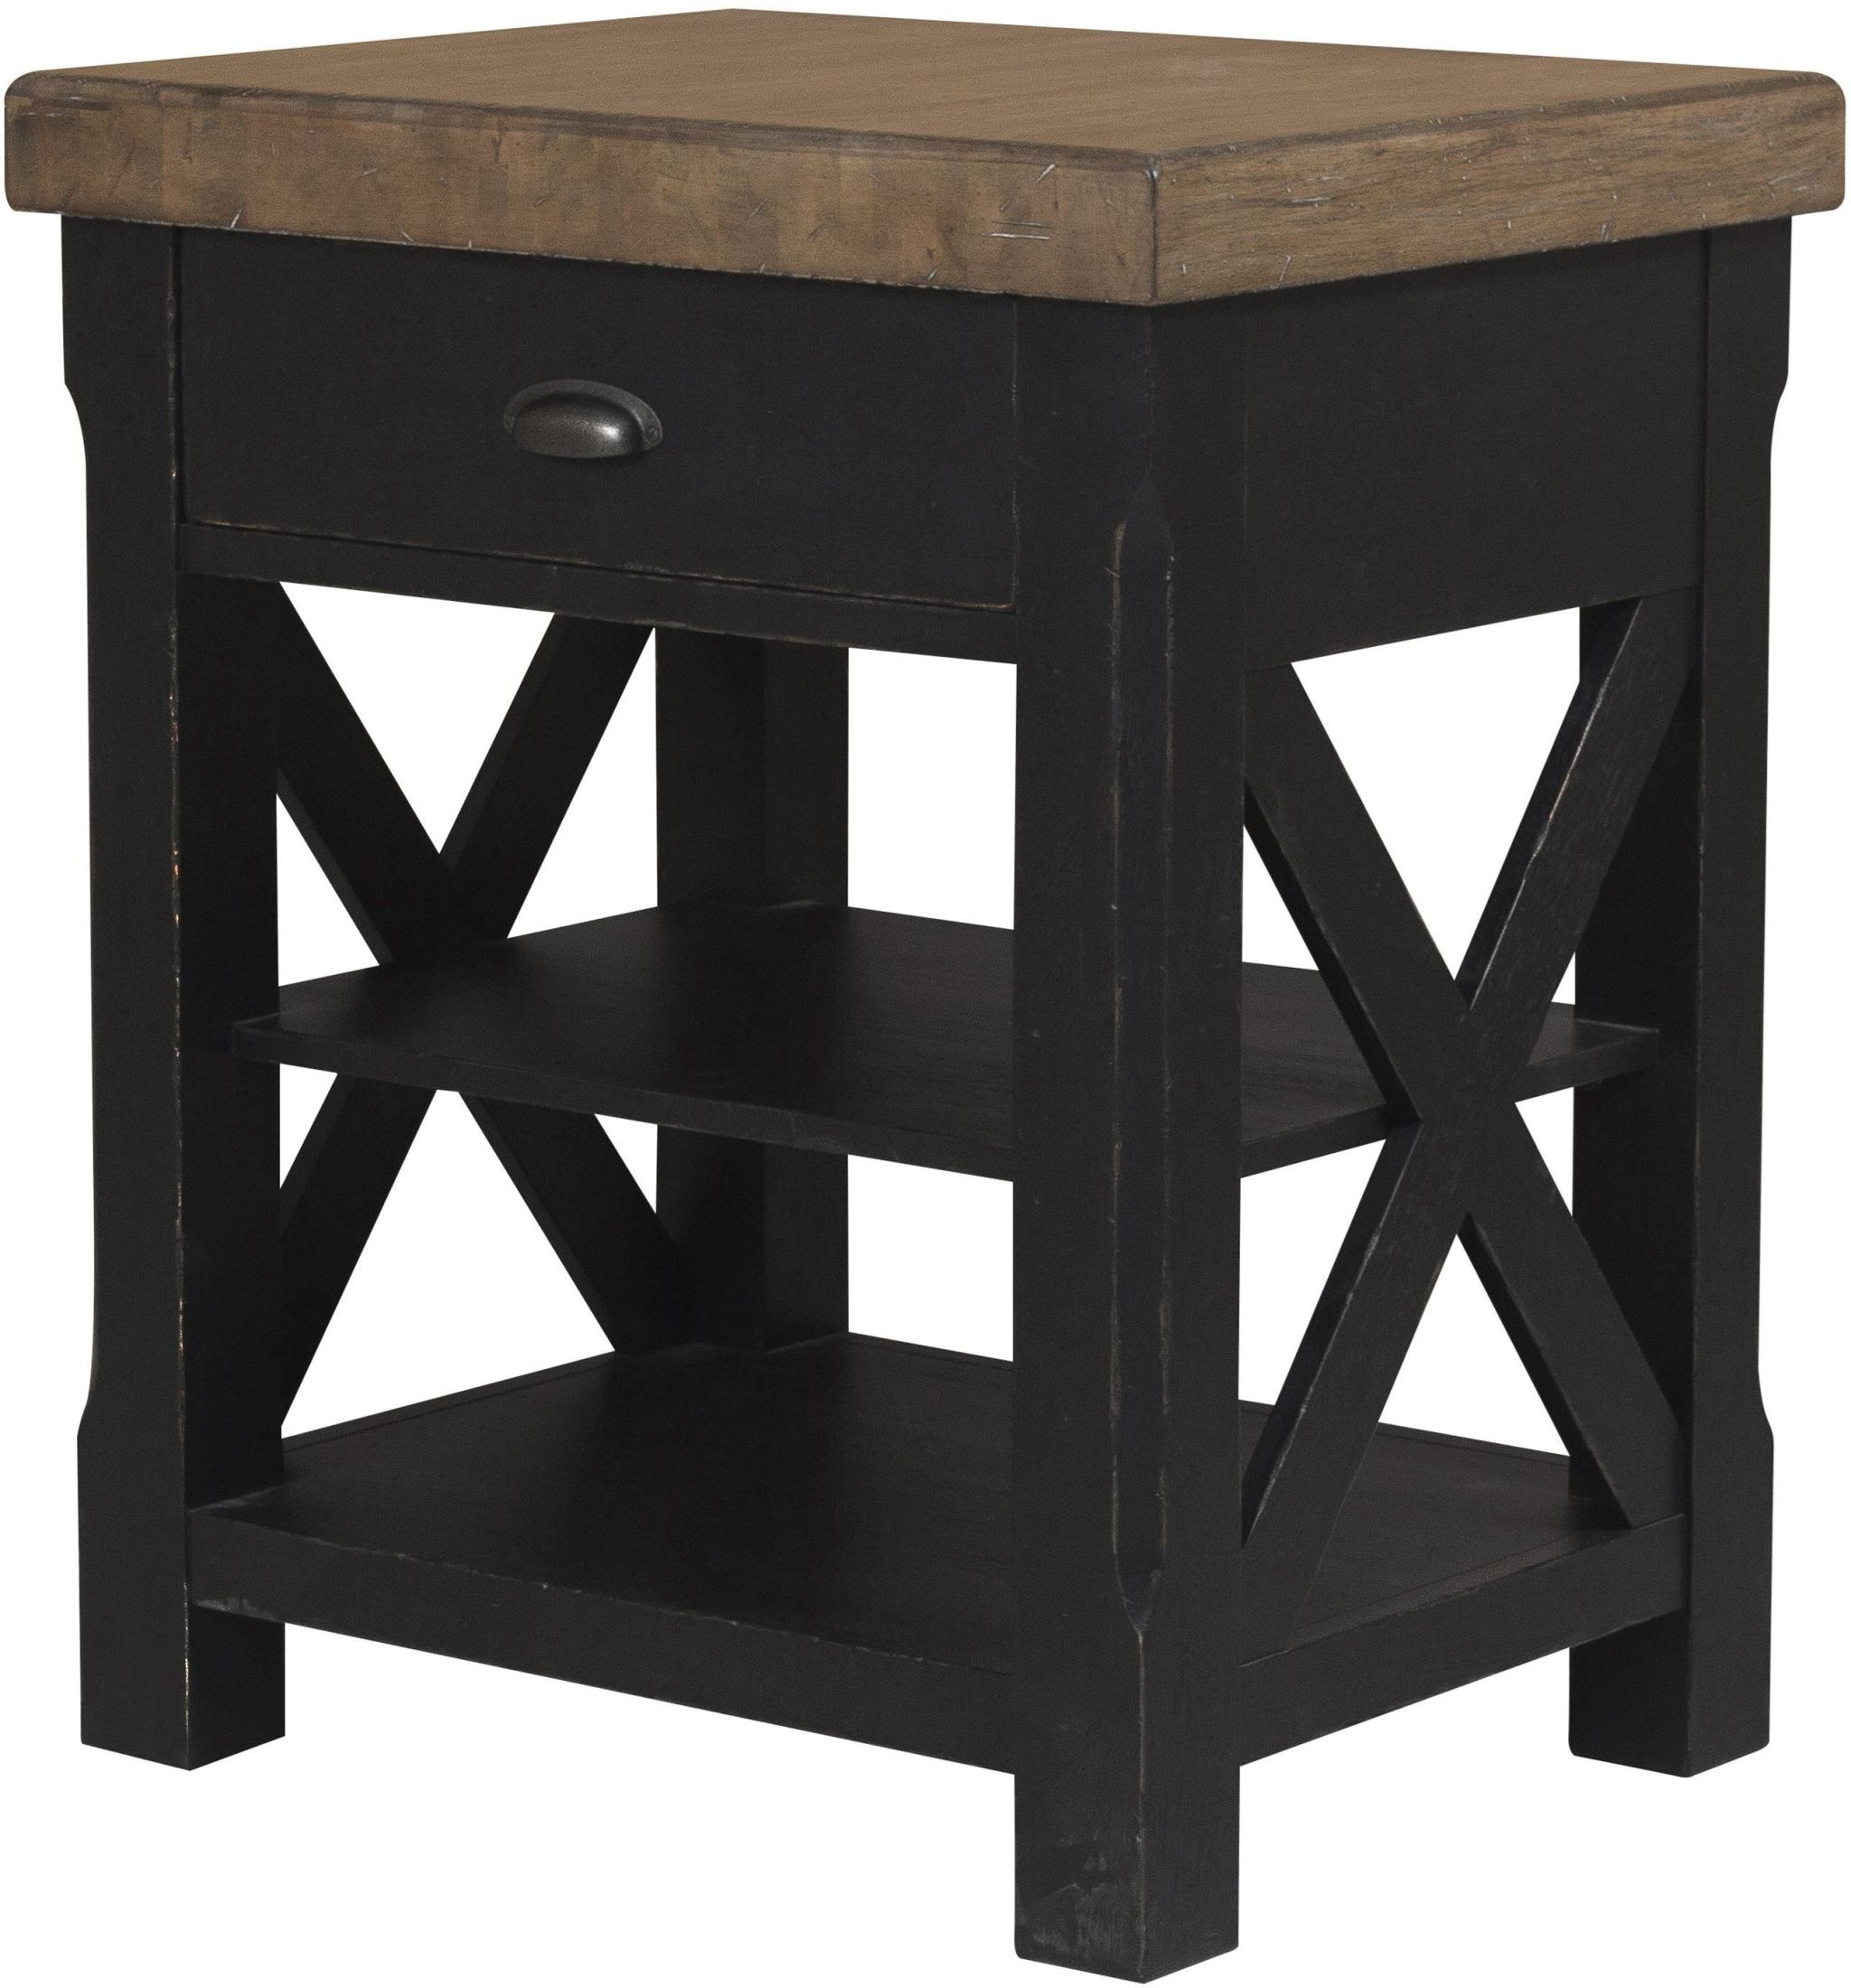 urban accents furniture. urban accents black kitchen island furniture l